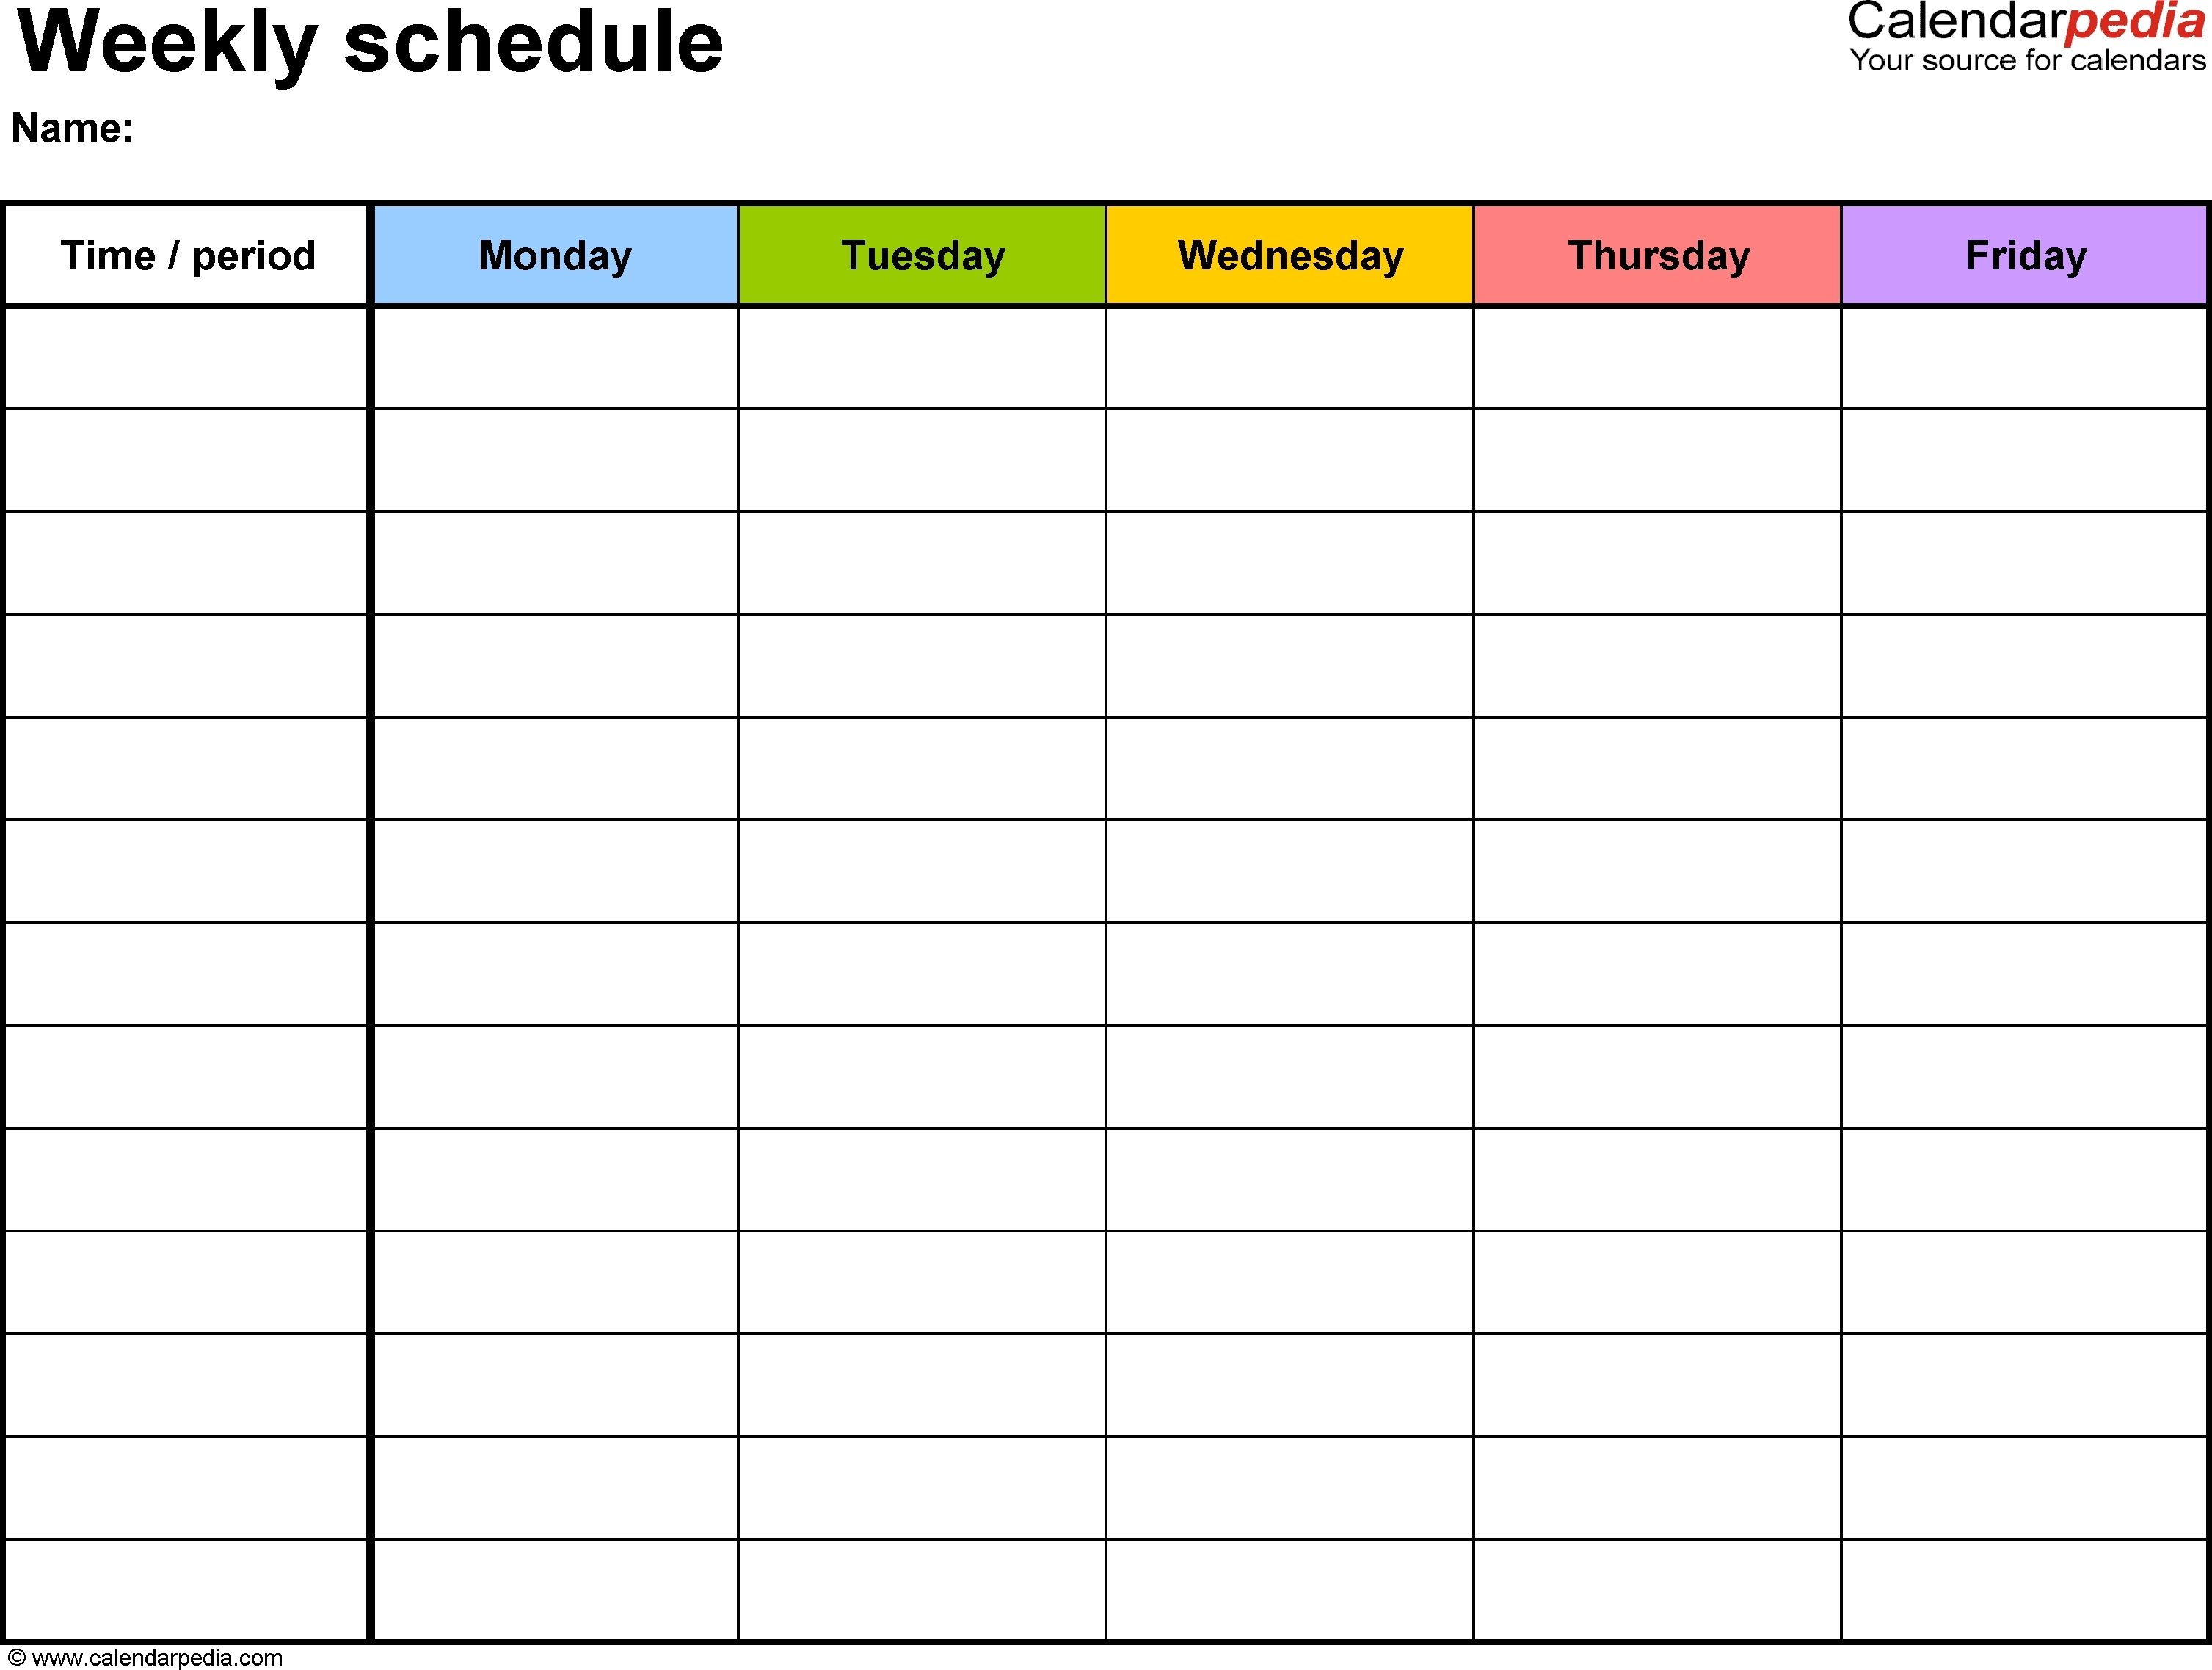 Editable Daily Calendar With Time Slots | Calendar Printing Example in Catholic Daily Planner Template Printable Free